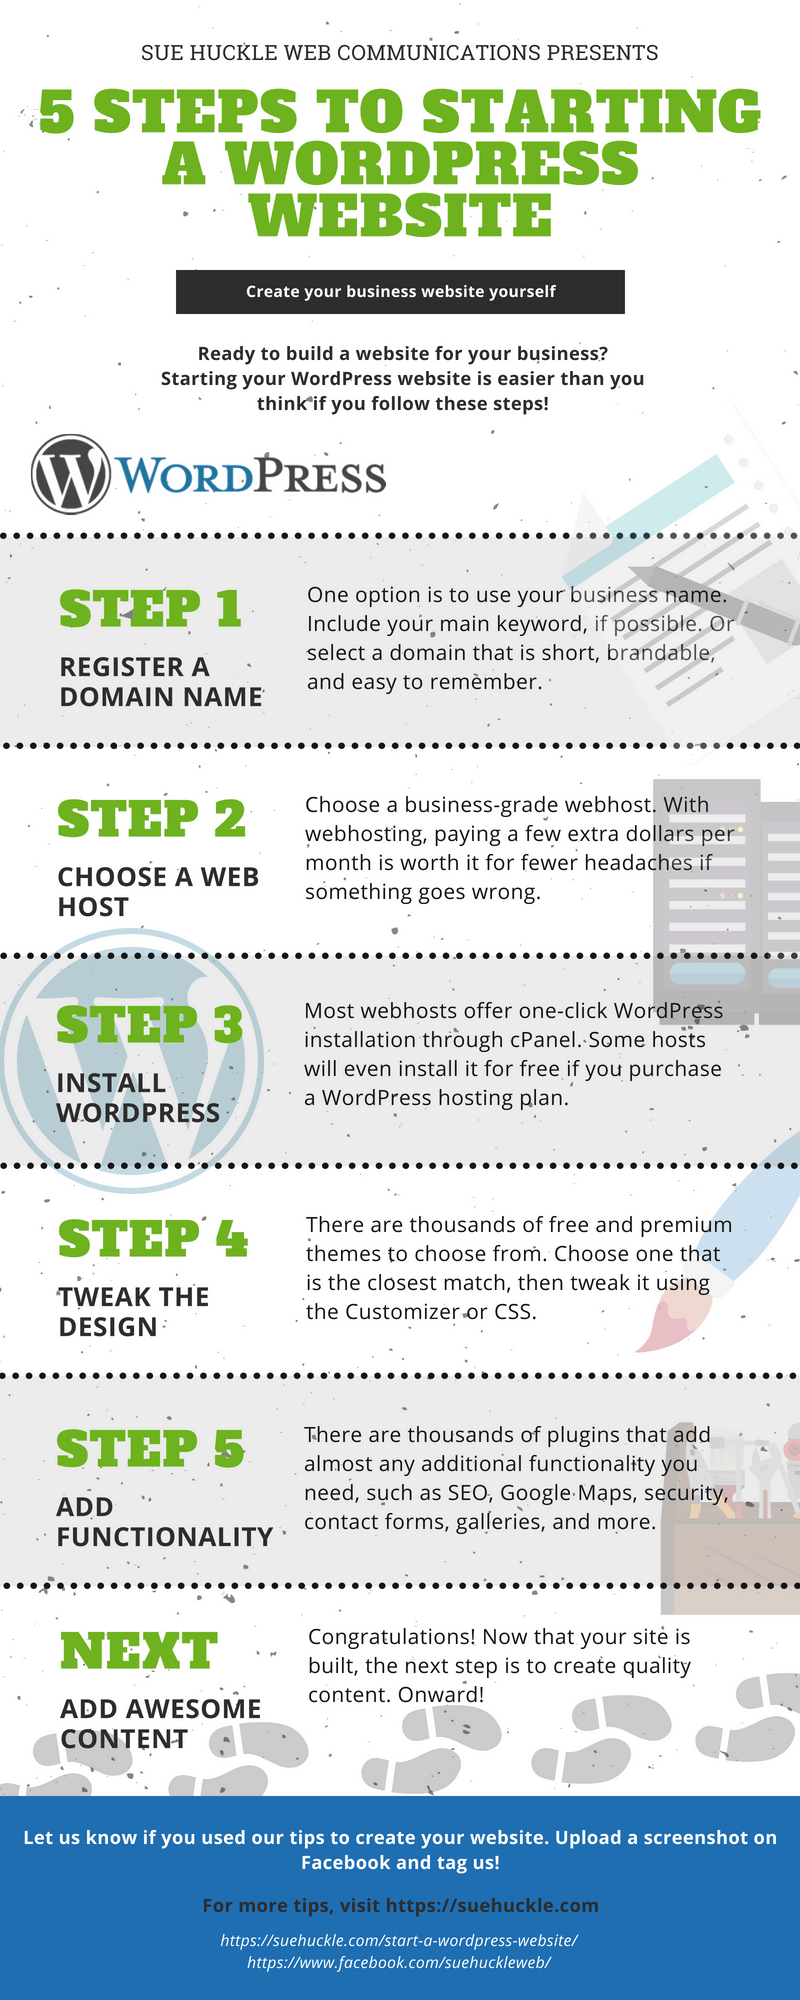 How to Start a WordPress Website infographic